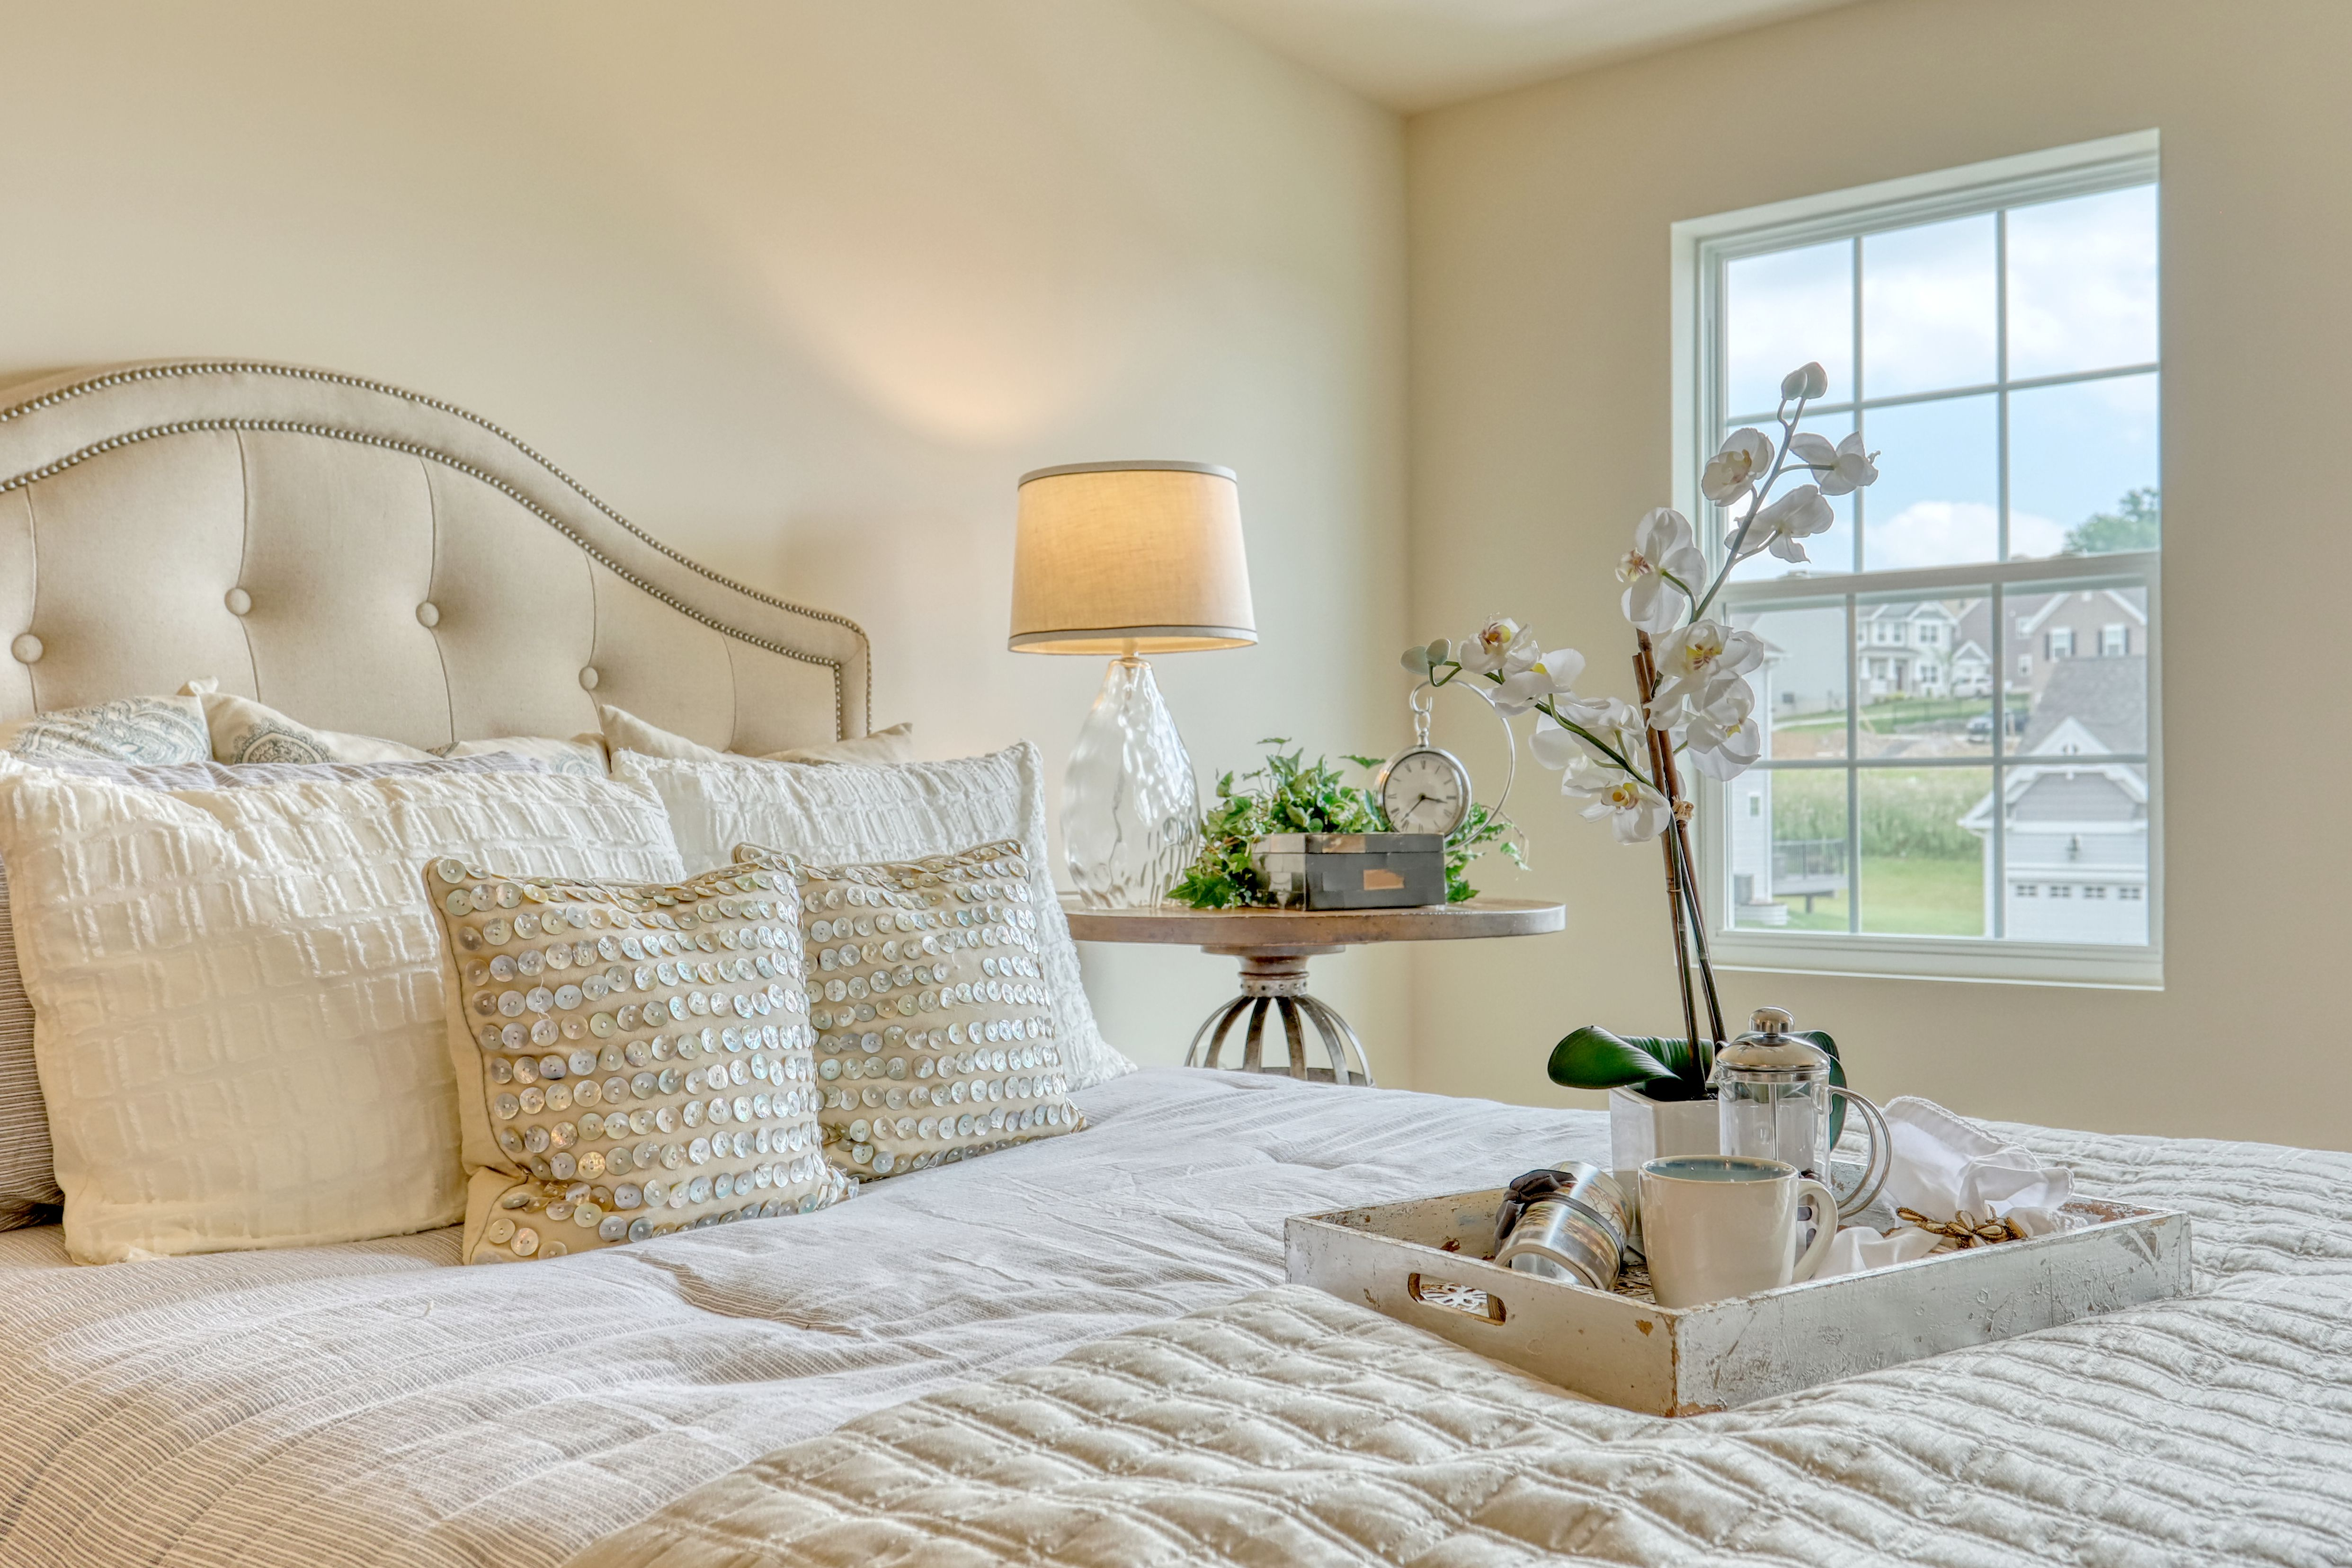 Bedroom featured in the Brentwood Vintage By Keystone Custom Homes in York, PA